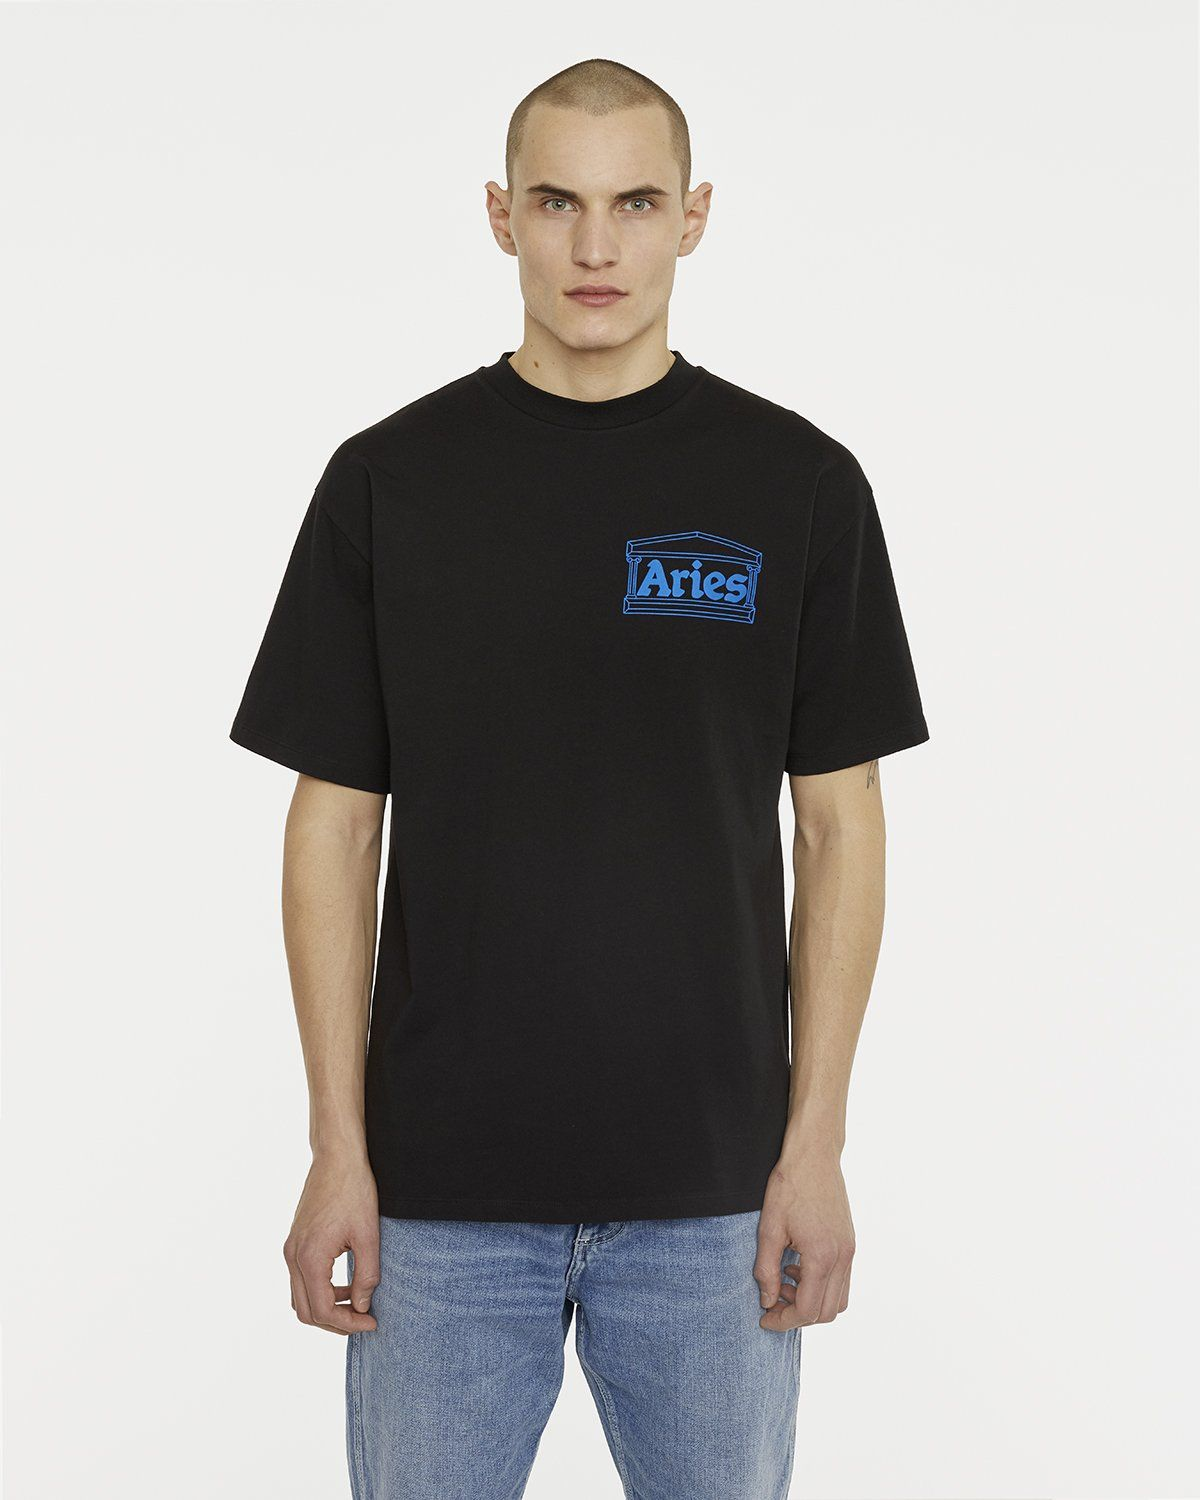 Aries - Temple Tee Black - Image 3